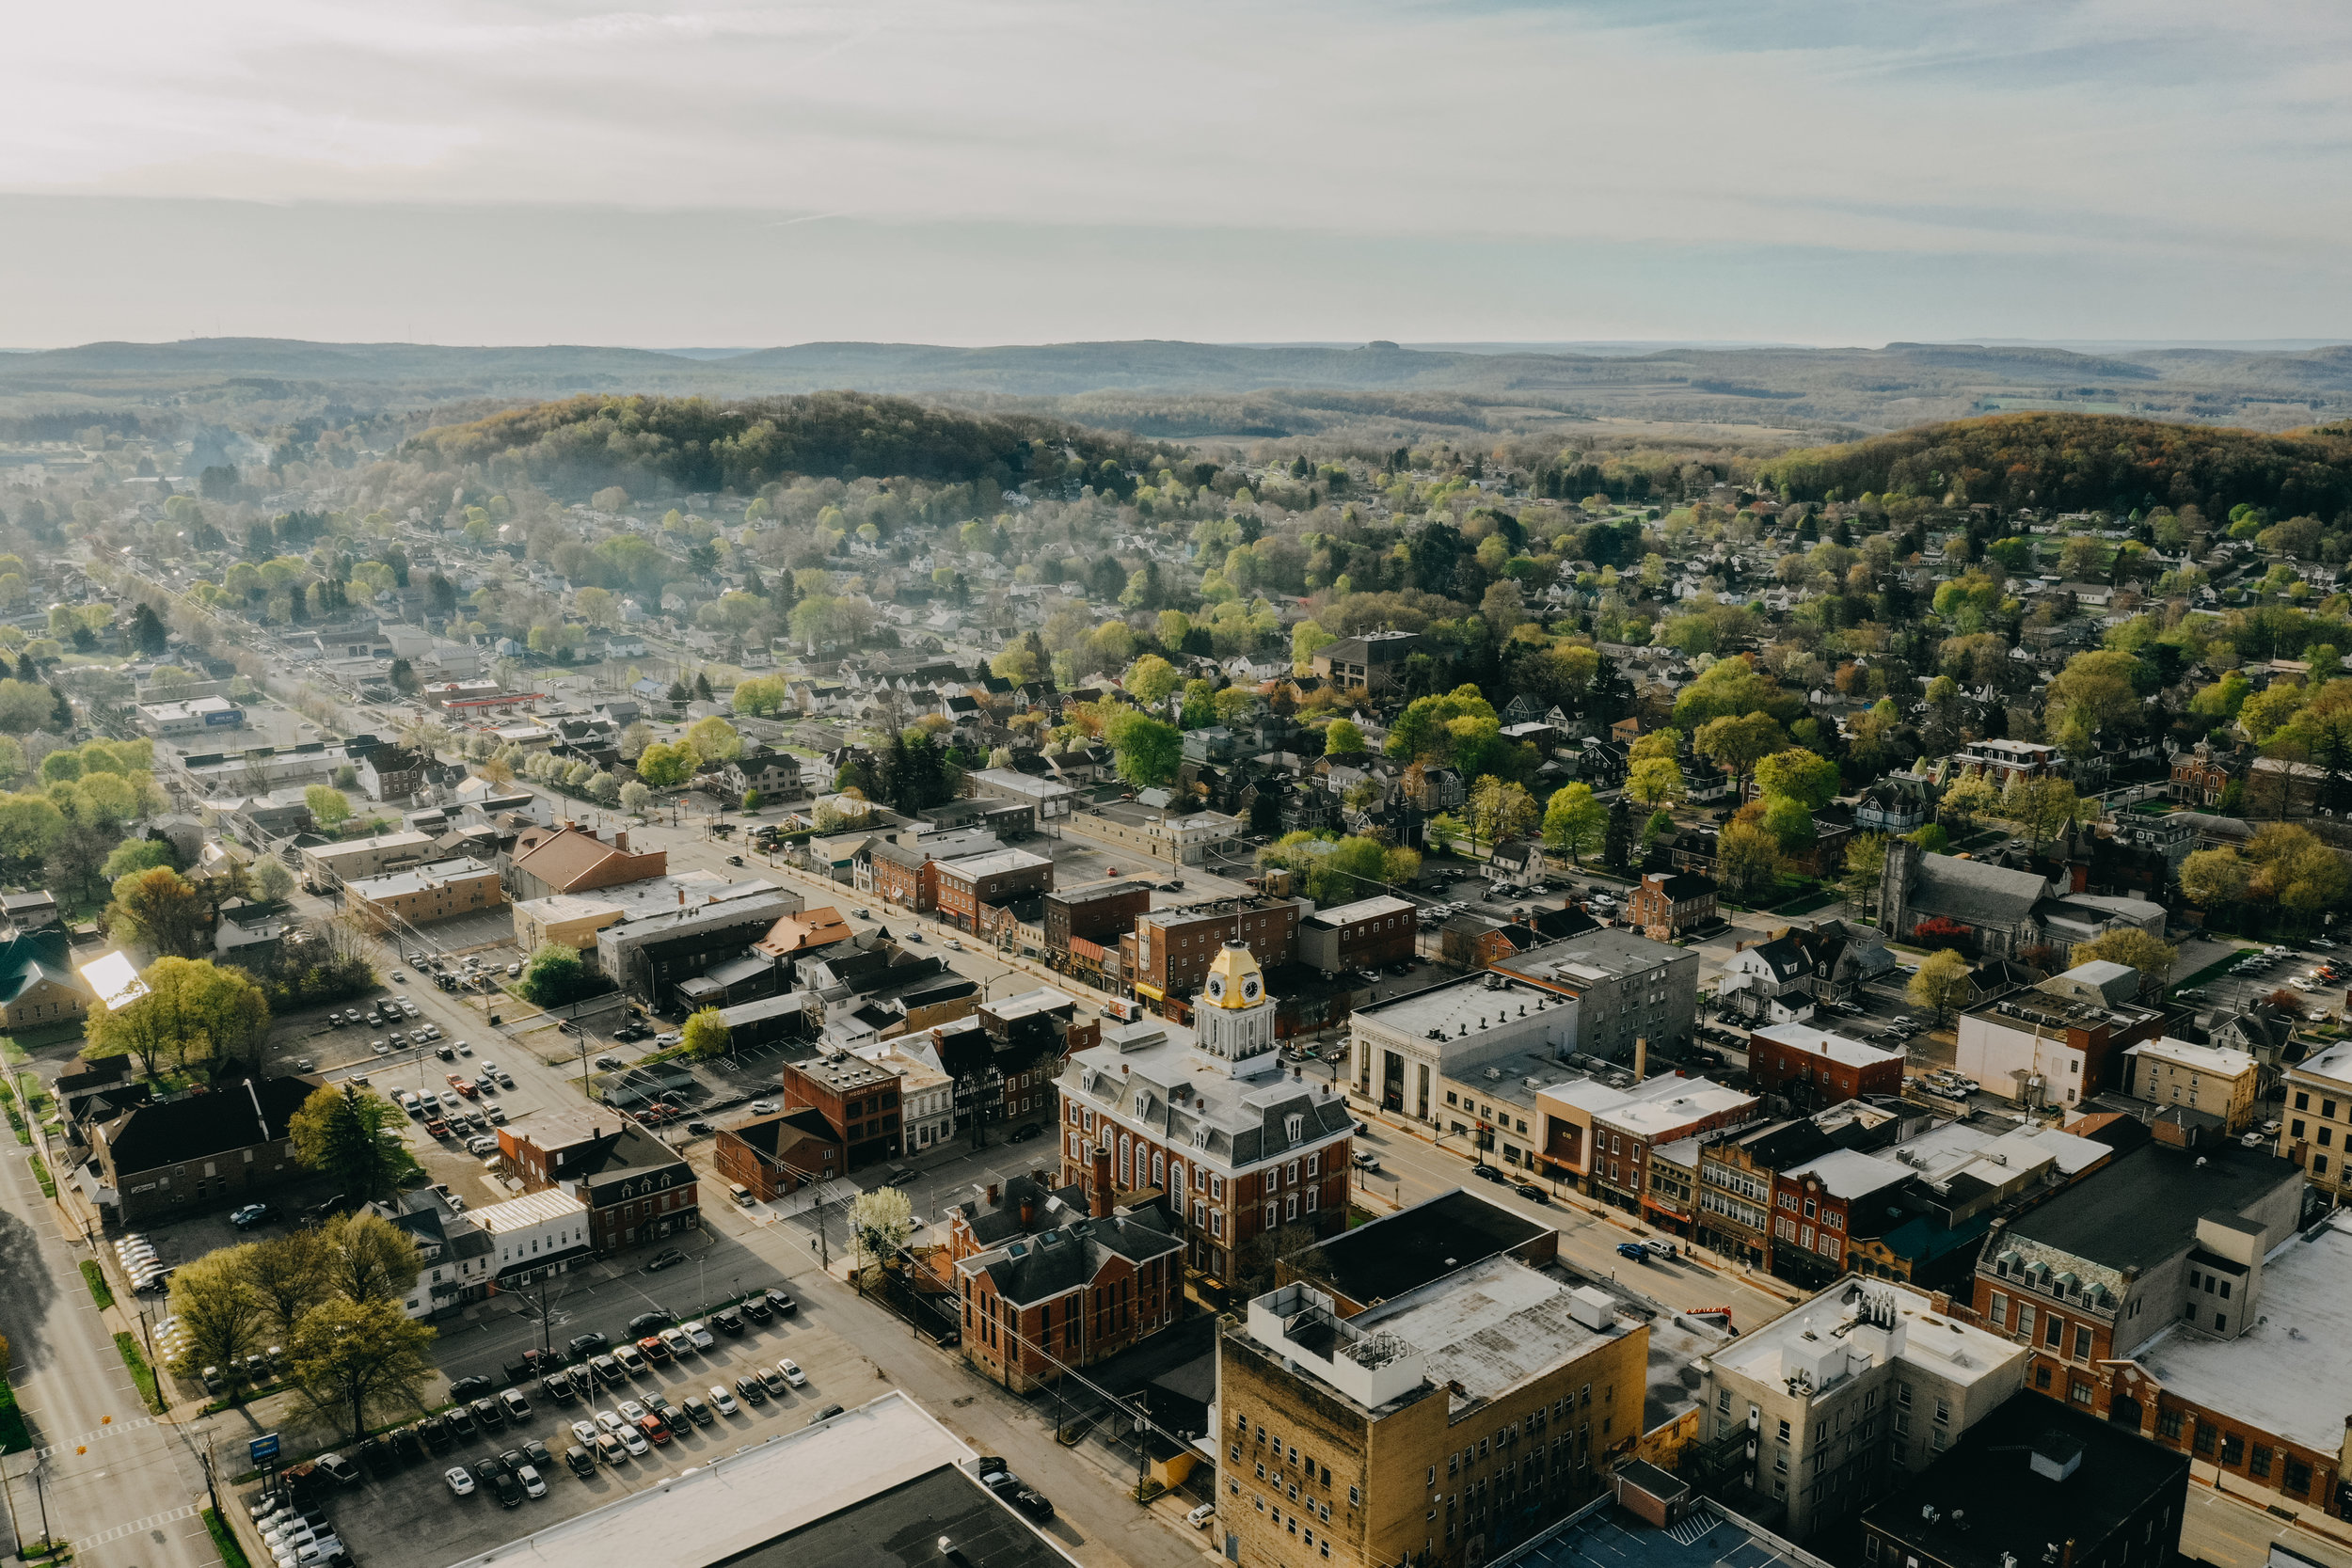 Indiana county has a rich history, beautiful surroundings, and a welcoming community